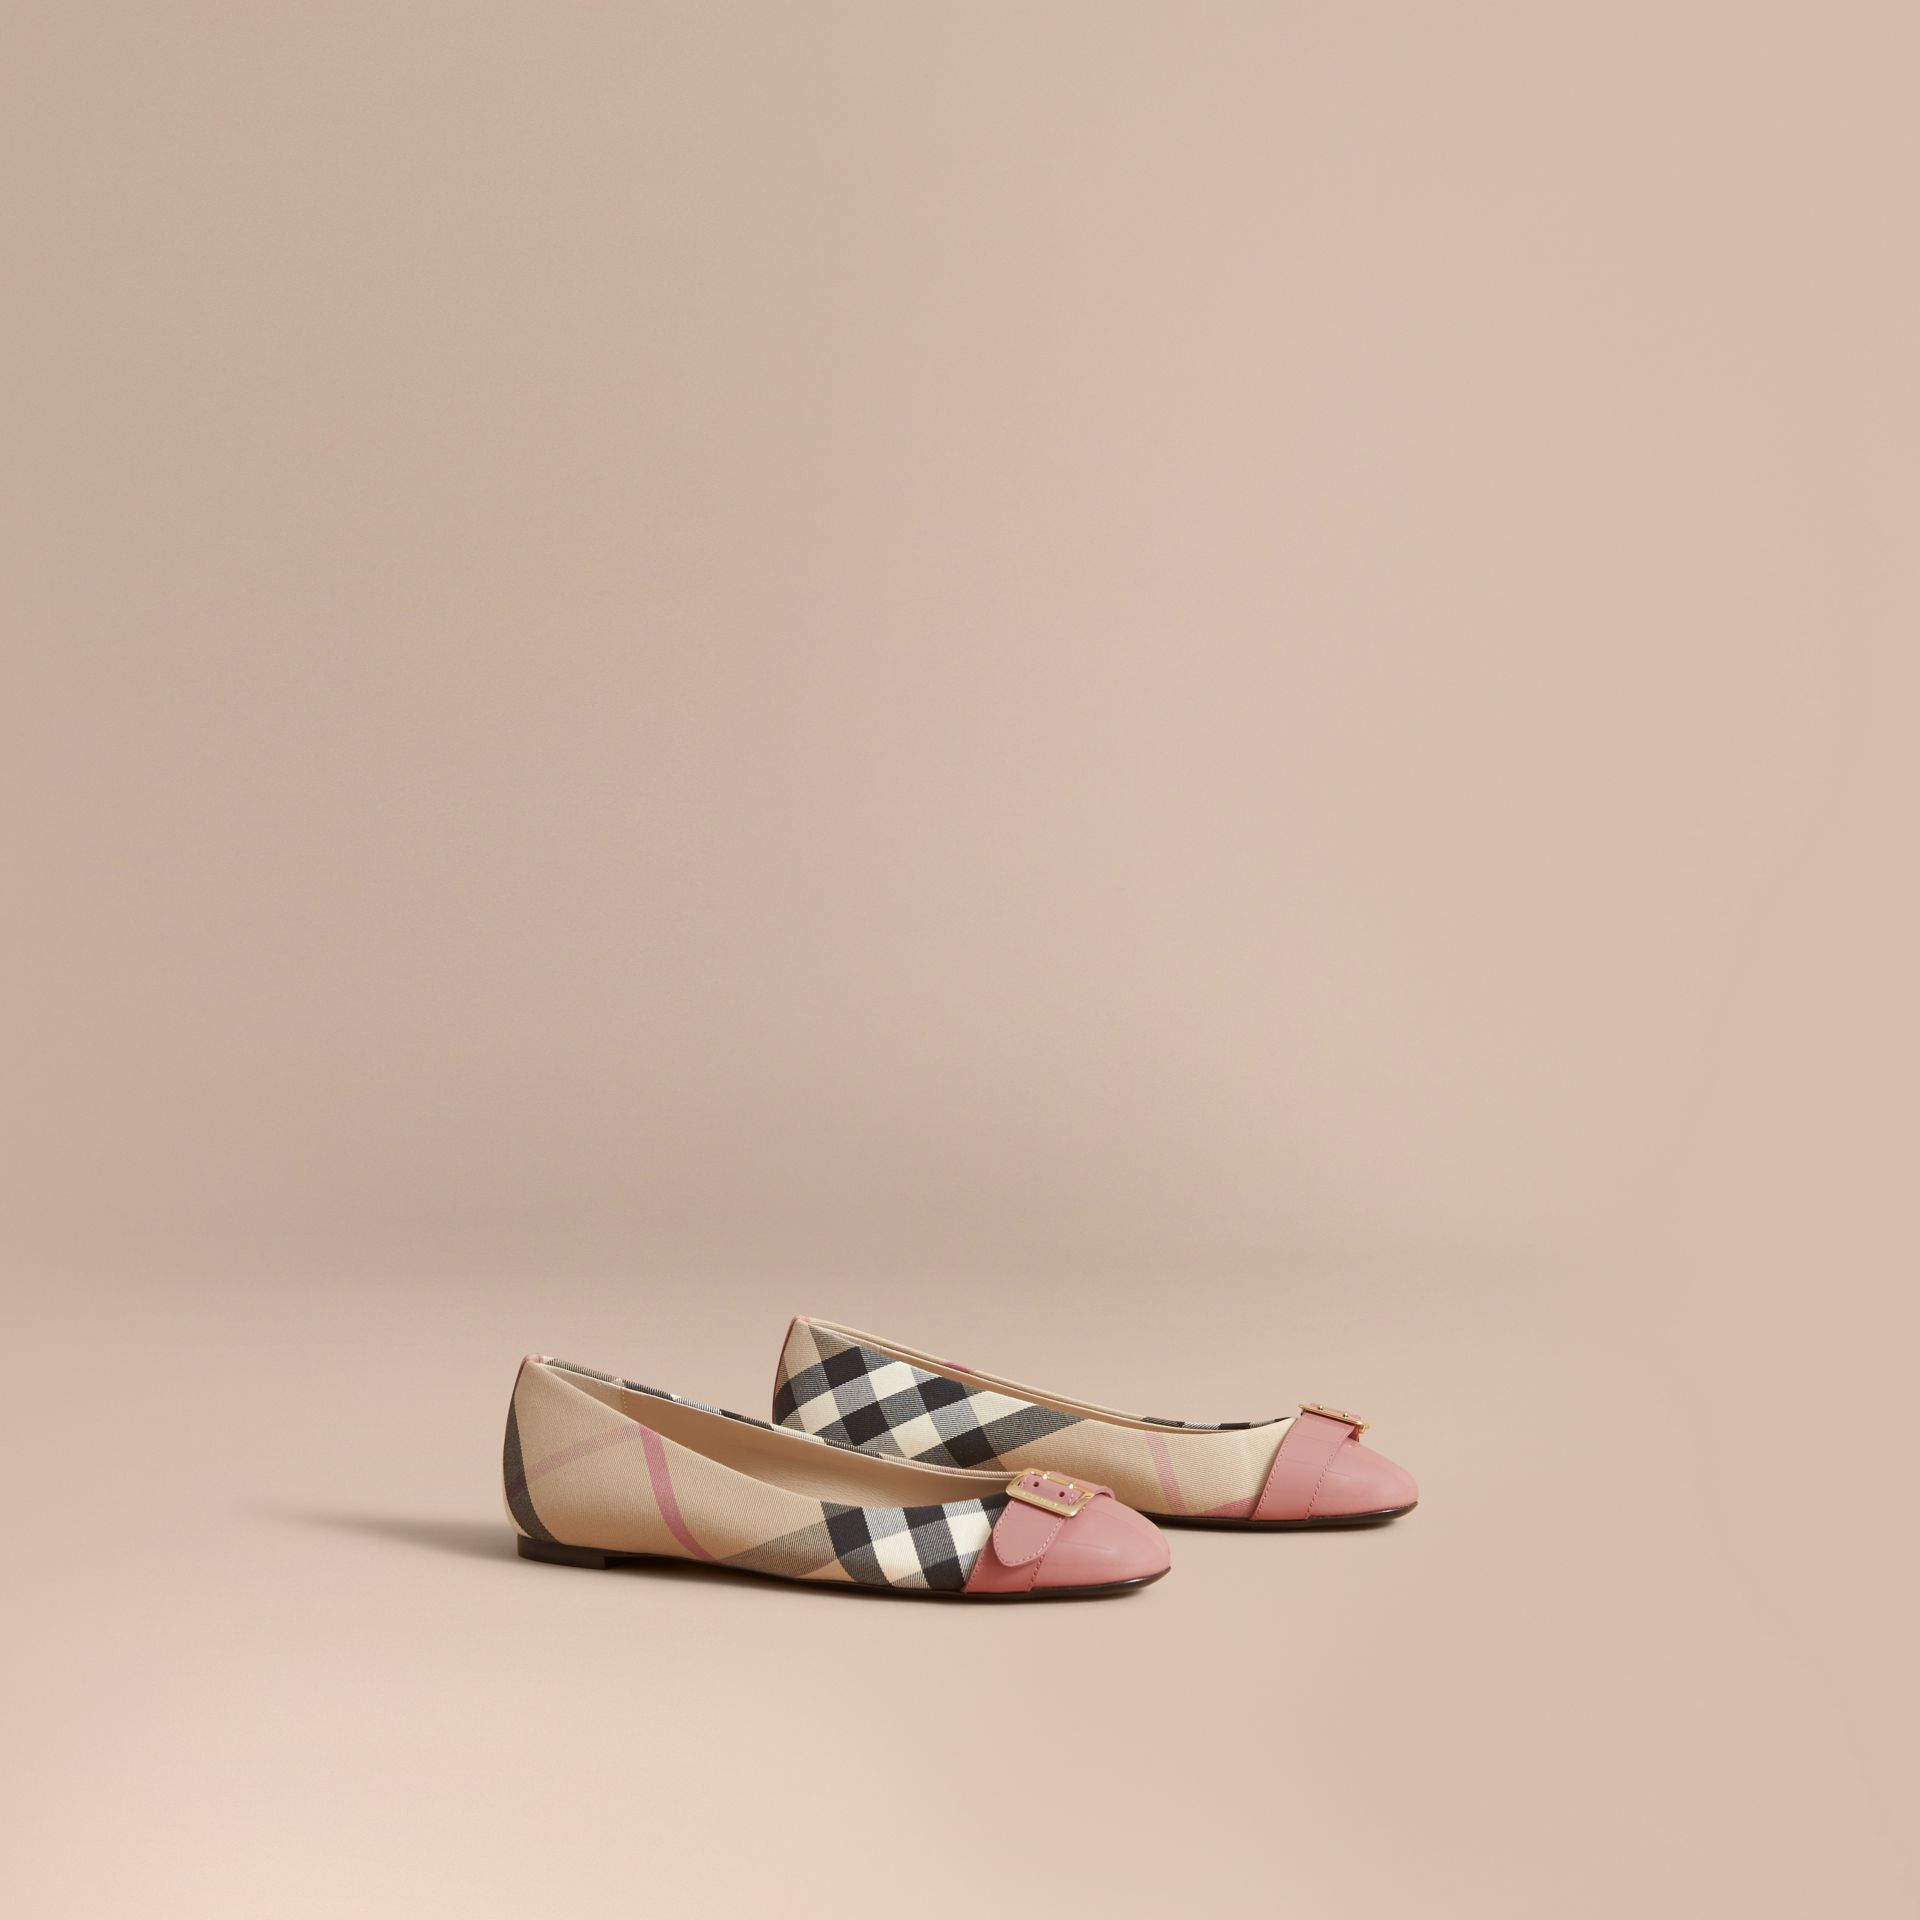 Buckle Detail Check and Patent Leather Ballerinas in Nude Pink - Women | Burberry - gallery image 1